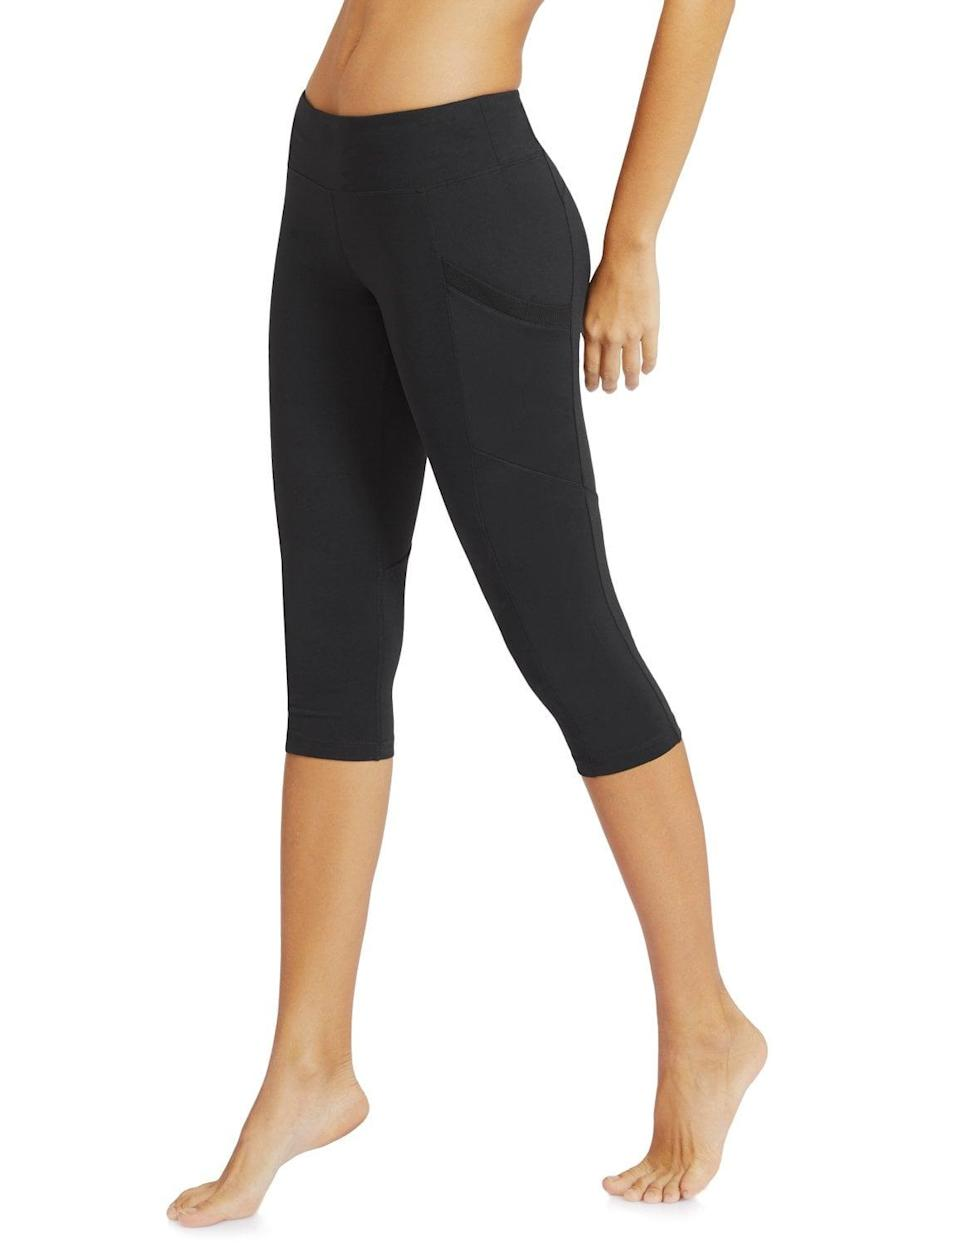 <p>If you're looking for a short-length choice, try these popular <span>Baleaf Workout Capris Leggings </span> ($22).</p>